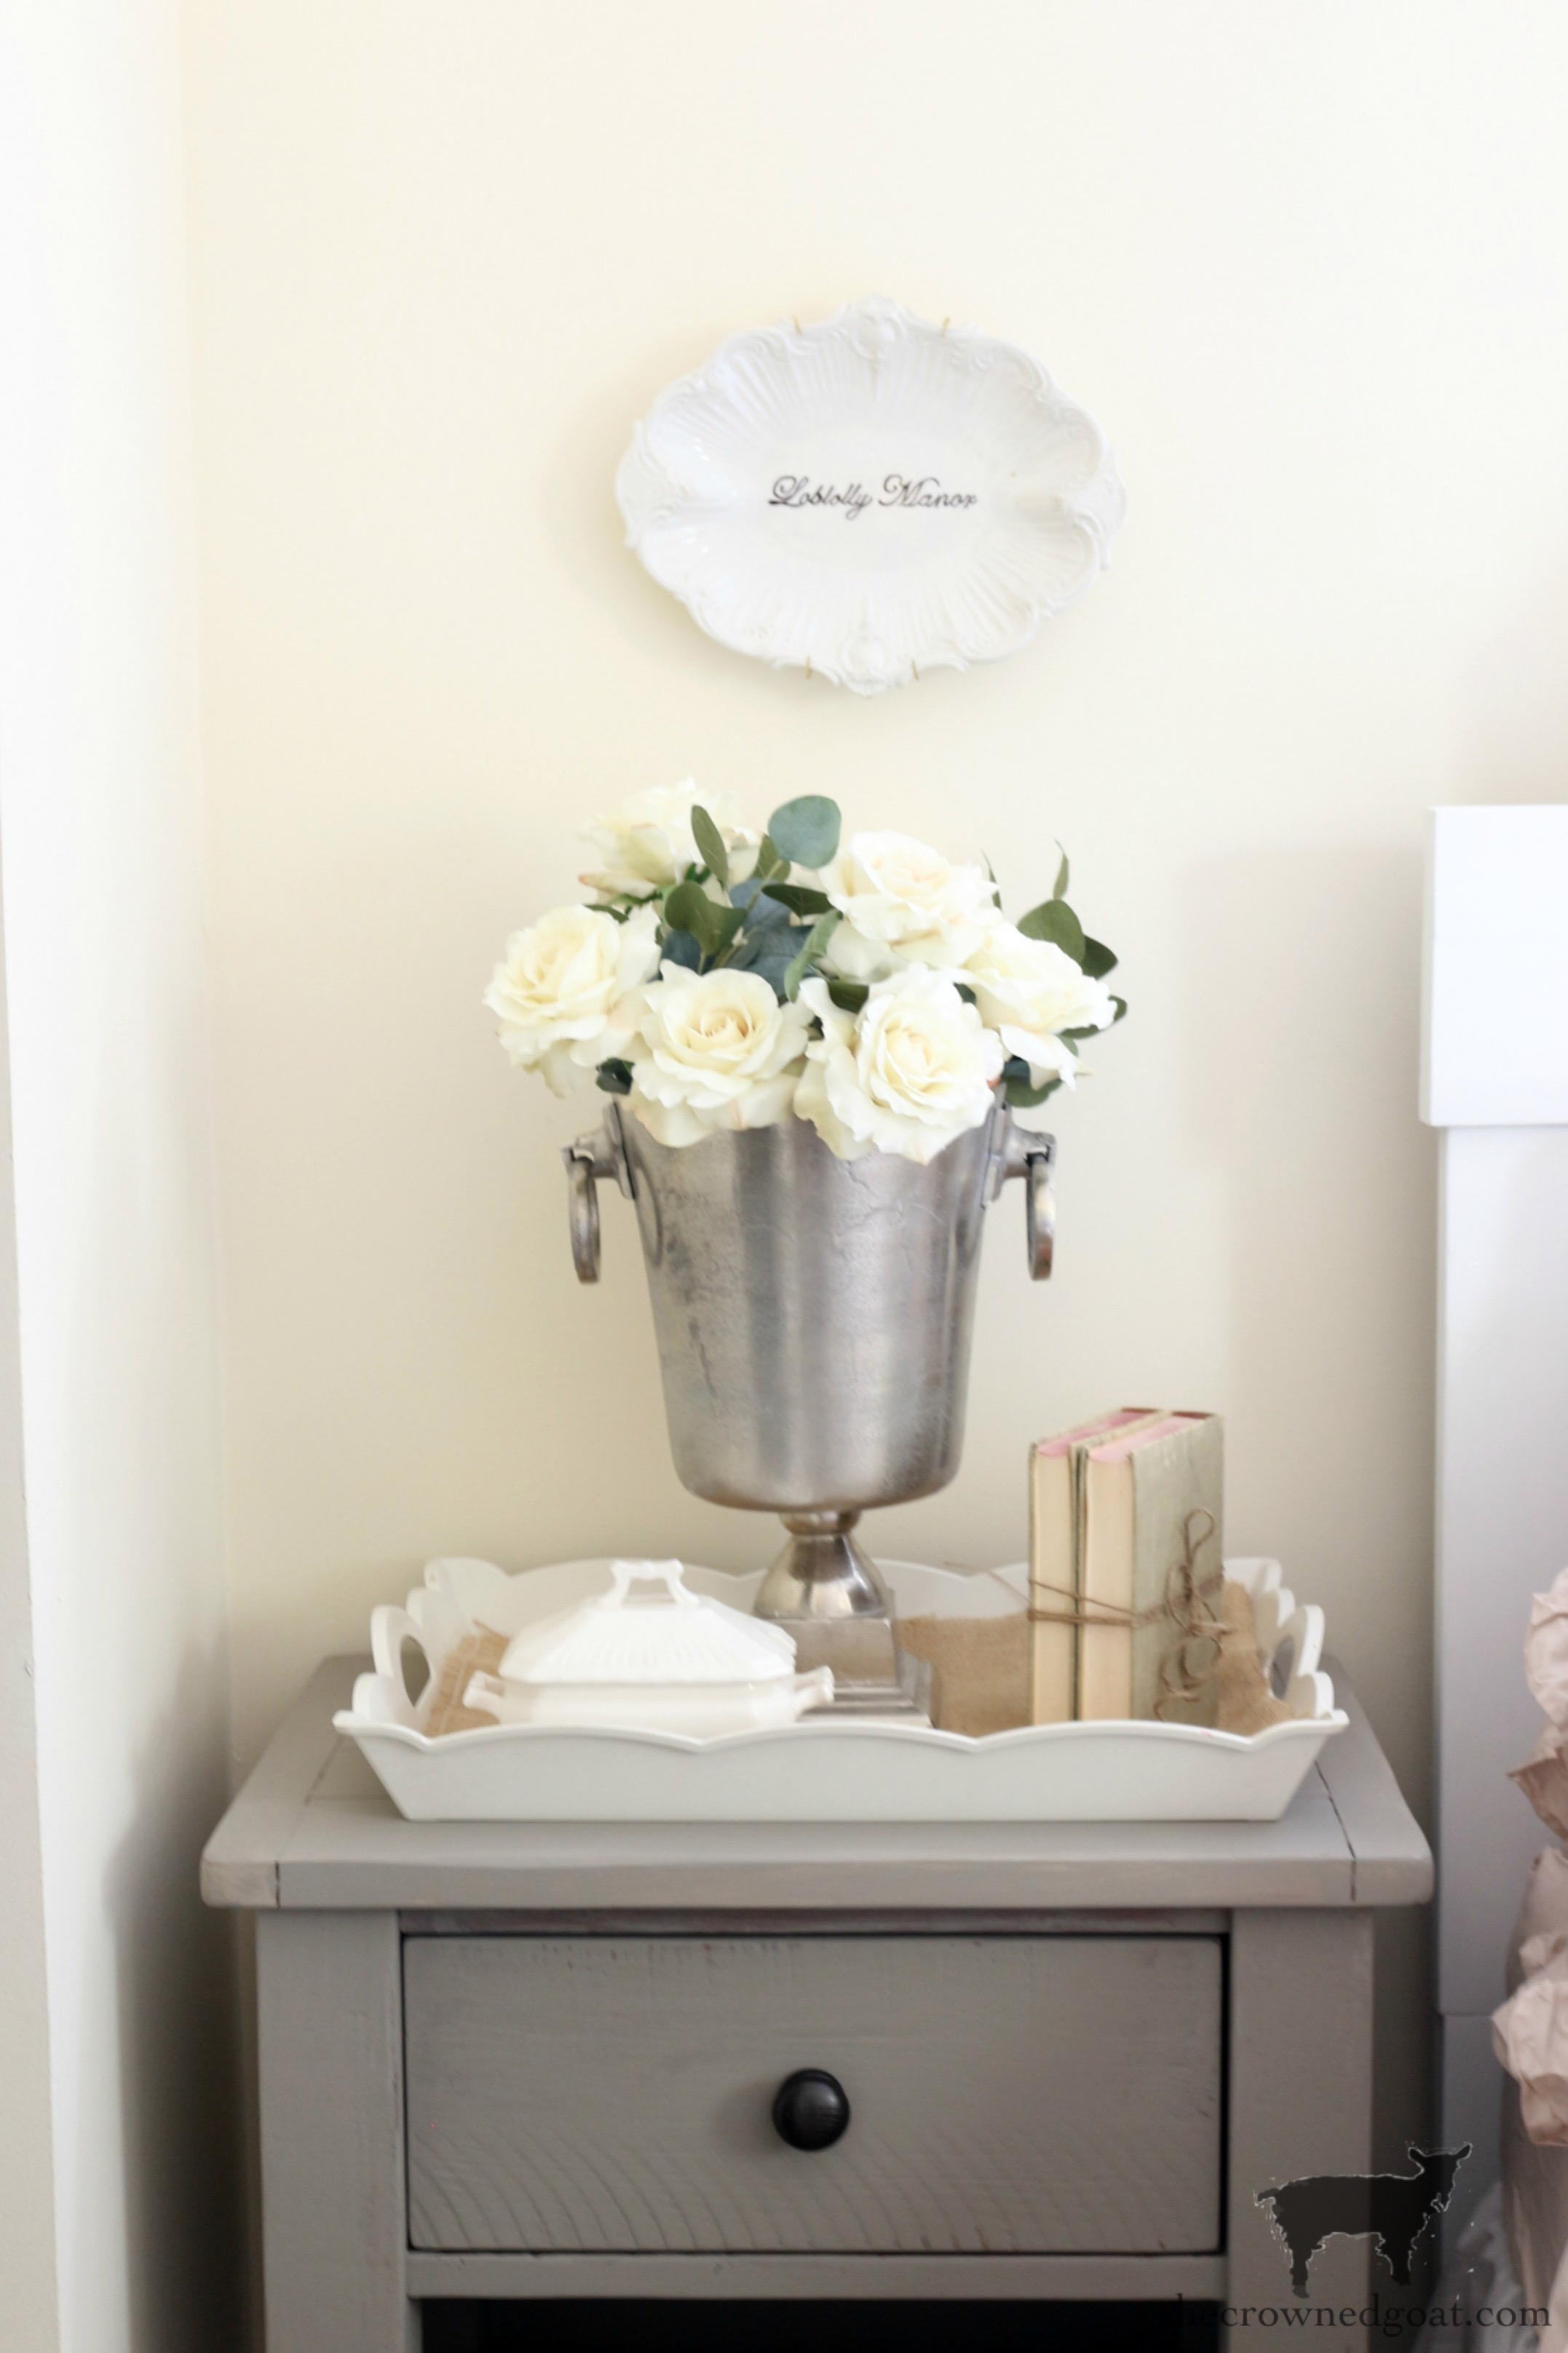 French-Linen-Nightstand-Makeover-The-Crowned-Goat-7 French Linen Nightstand Makeover Decorating DIY Painted Furniture